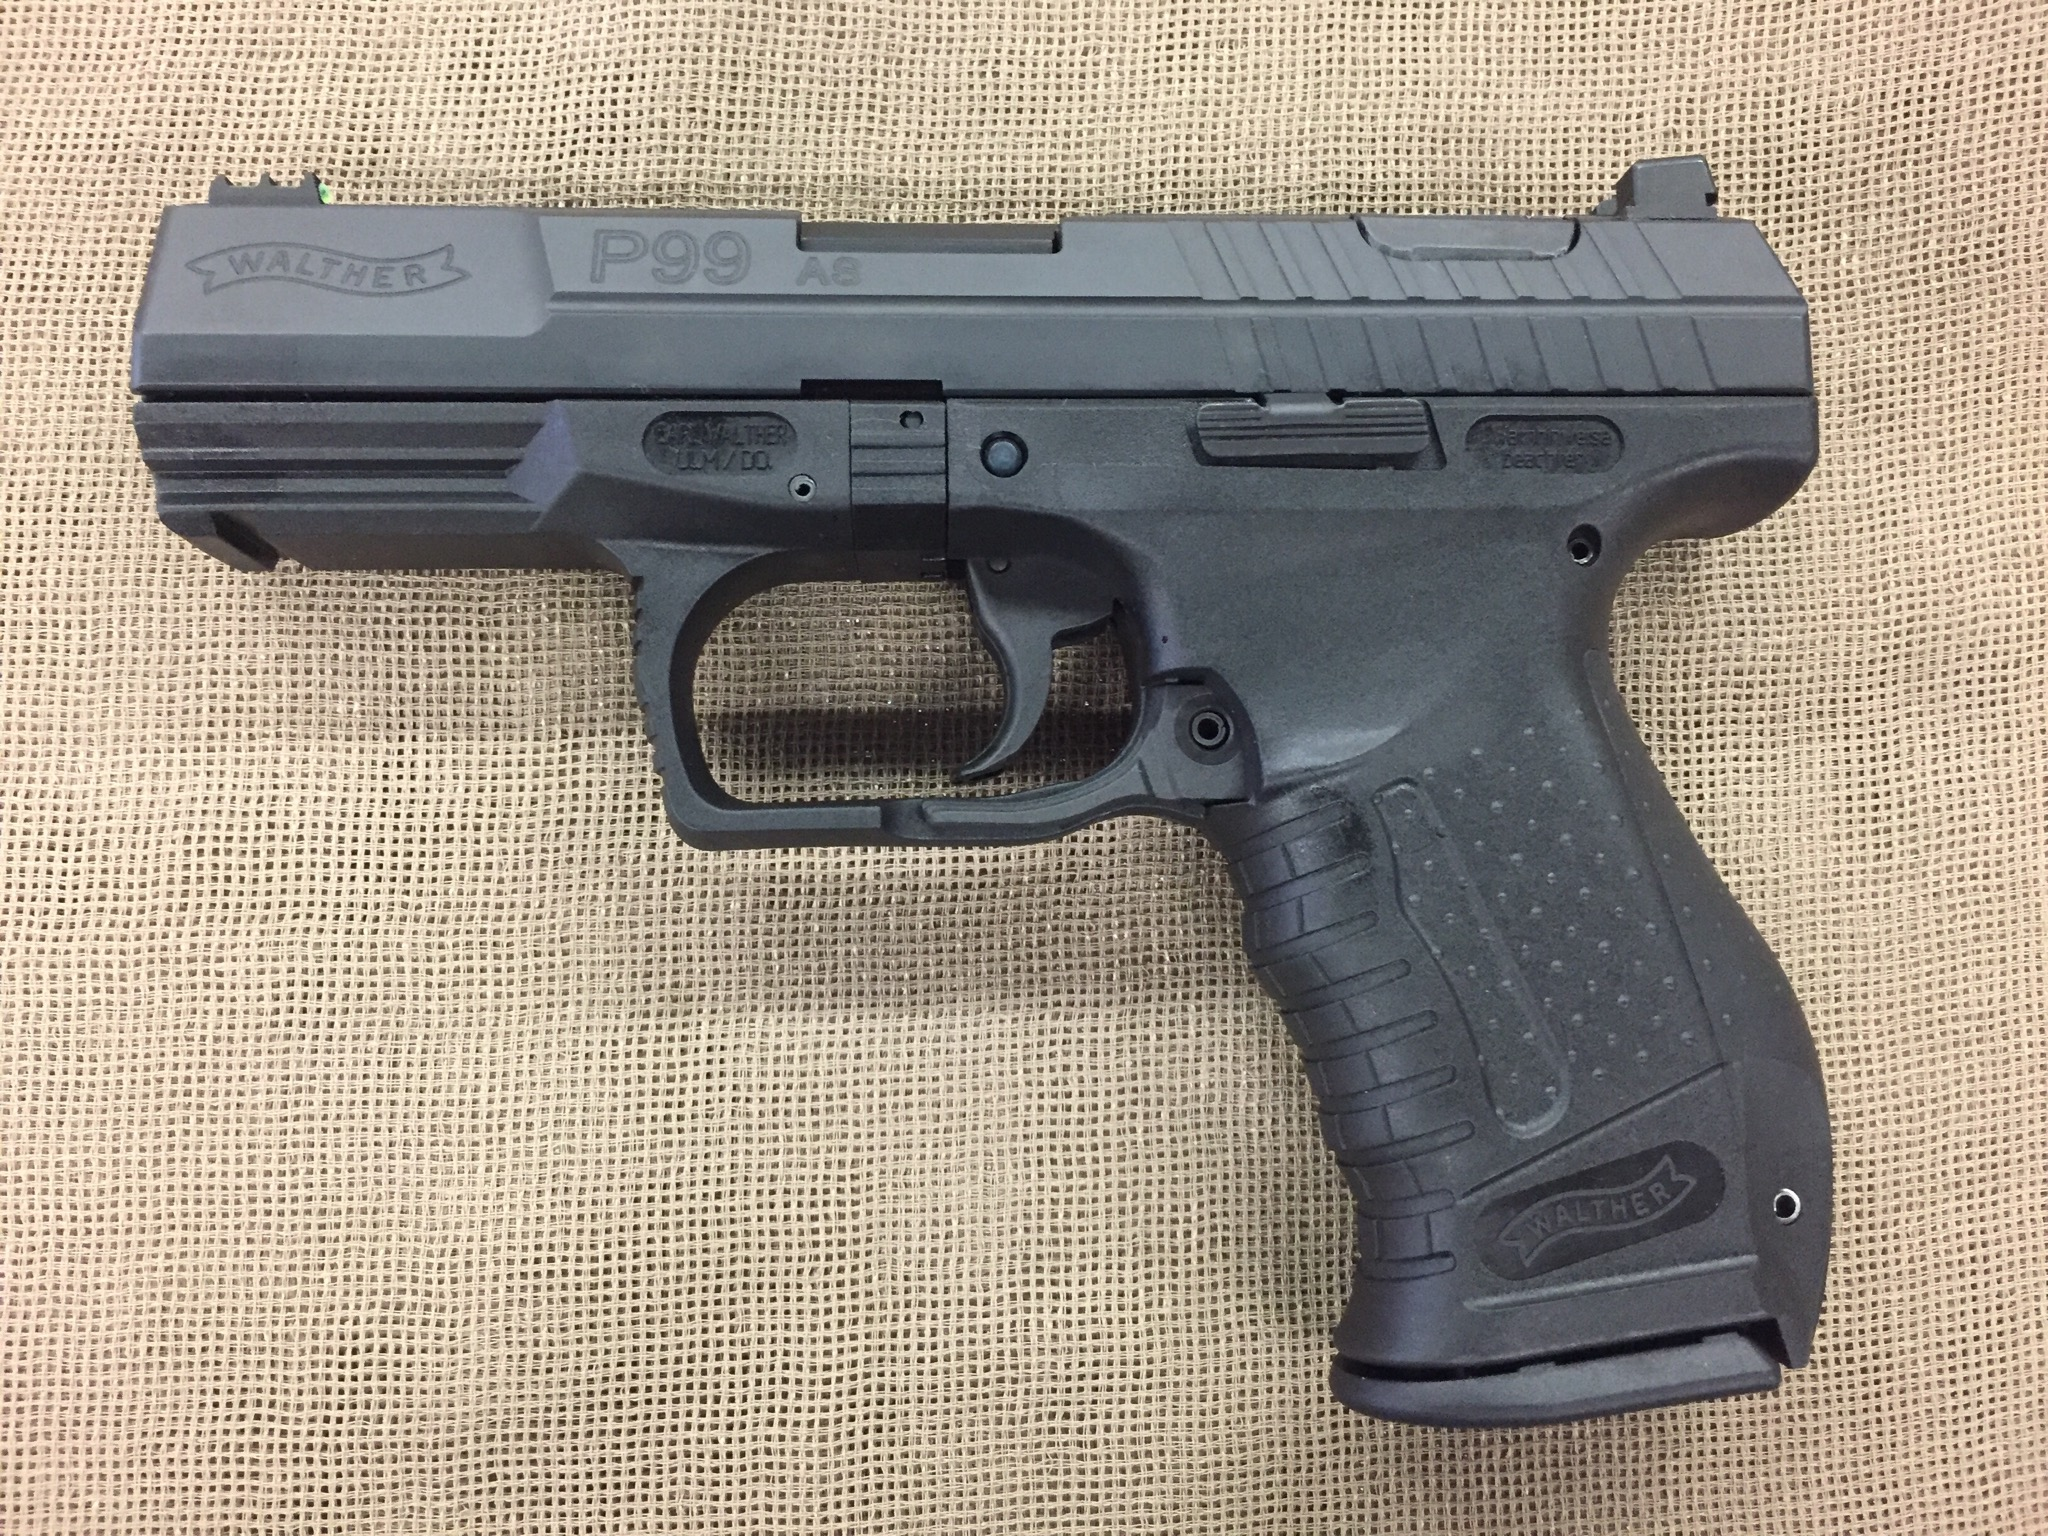 Walther Model P99 9mm auto full size, four magazines - used